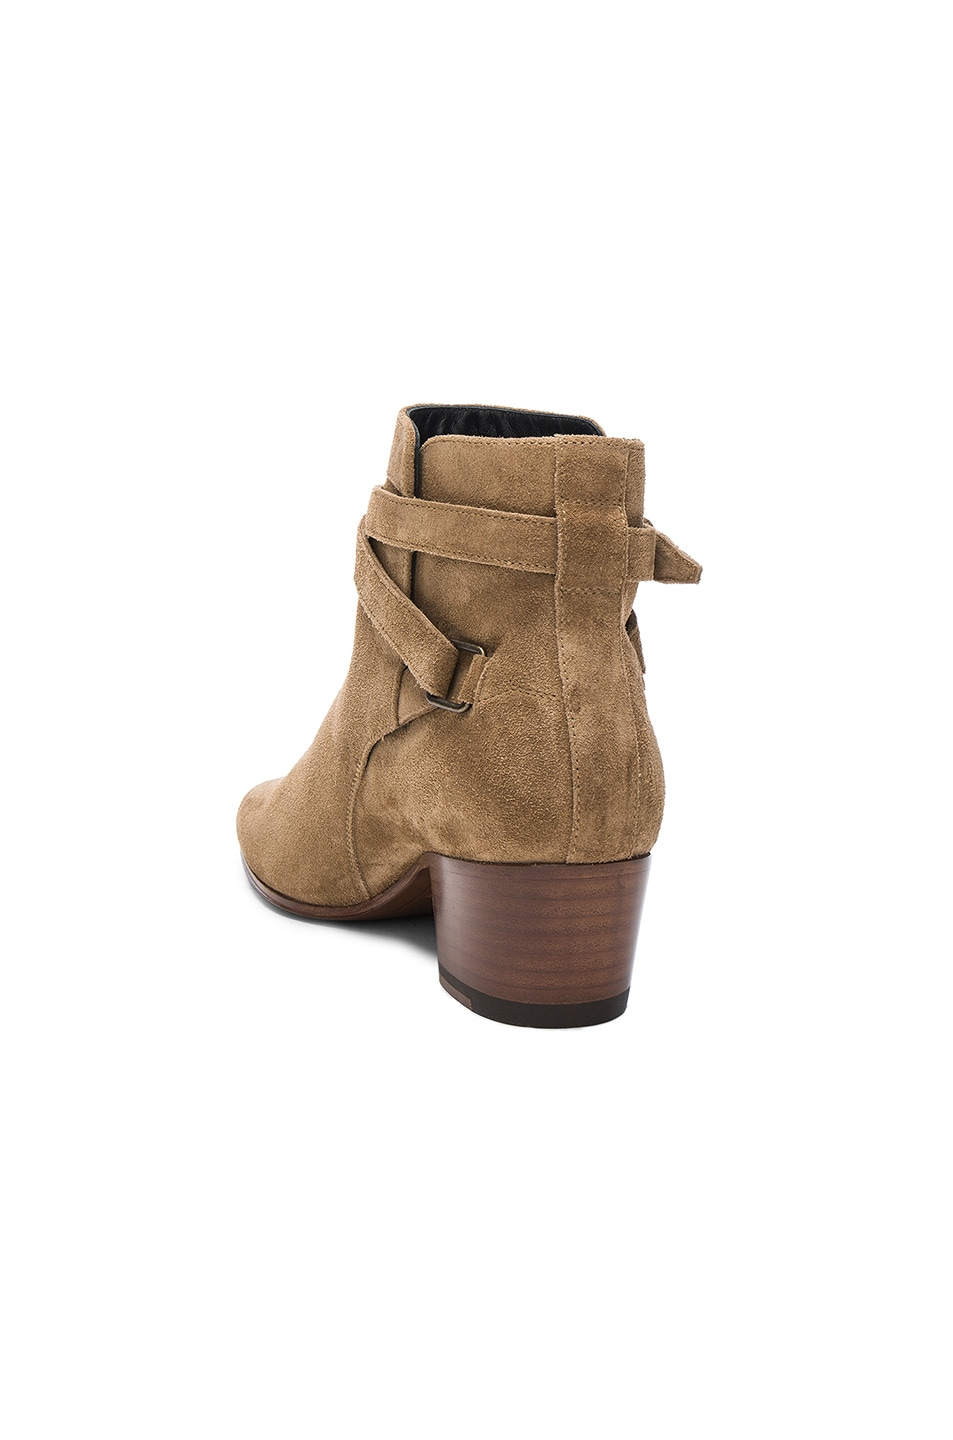 Image 3 of Saint Laurent Suede Blake Boots in Light Cigare